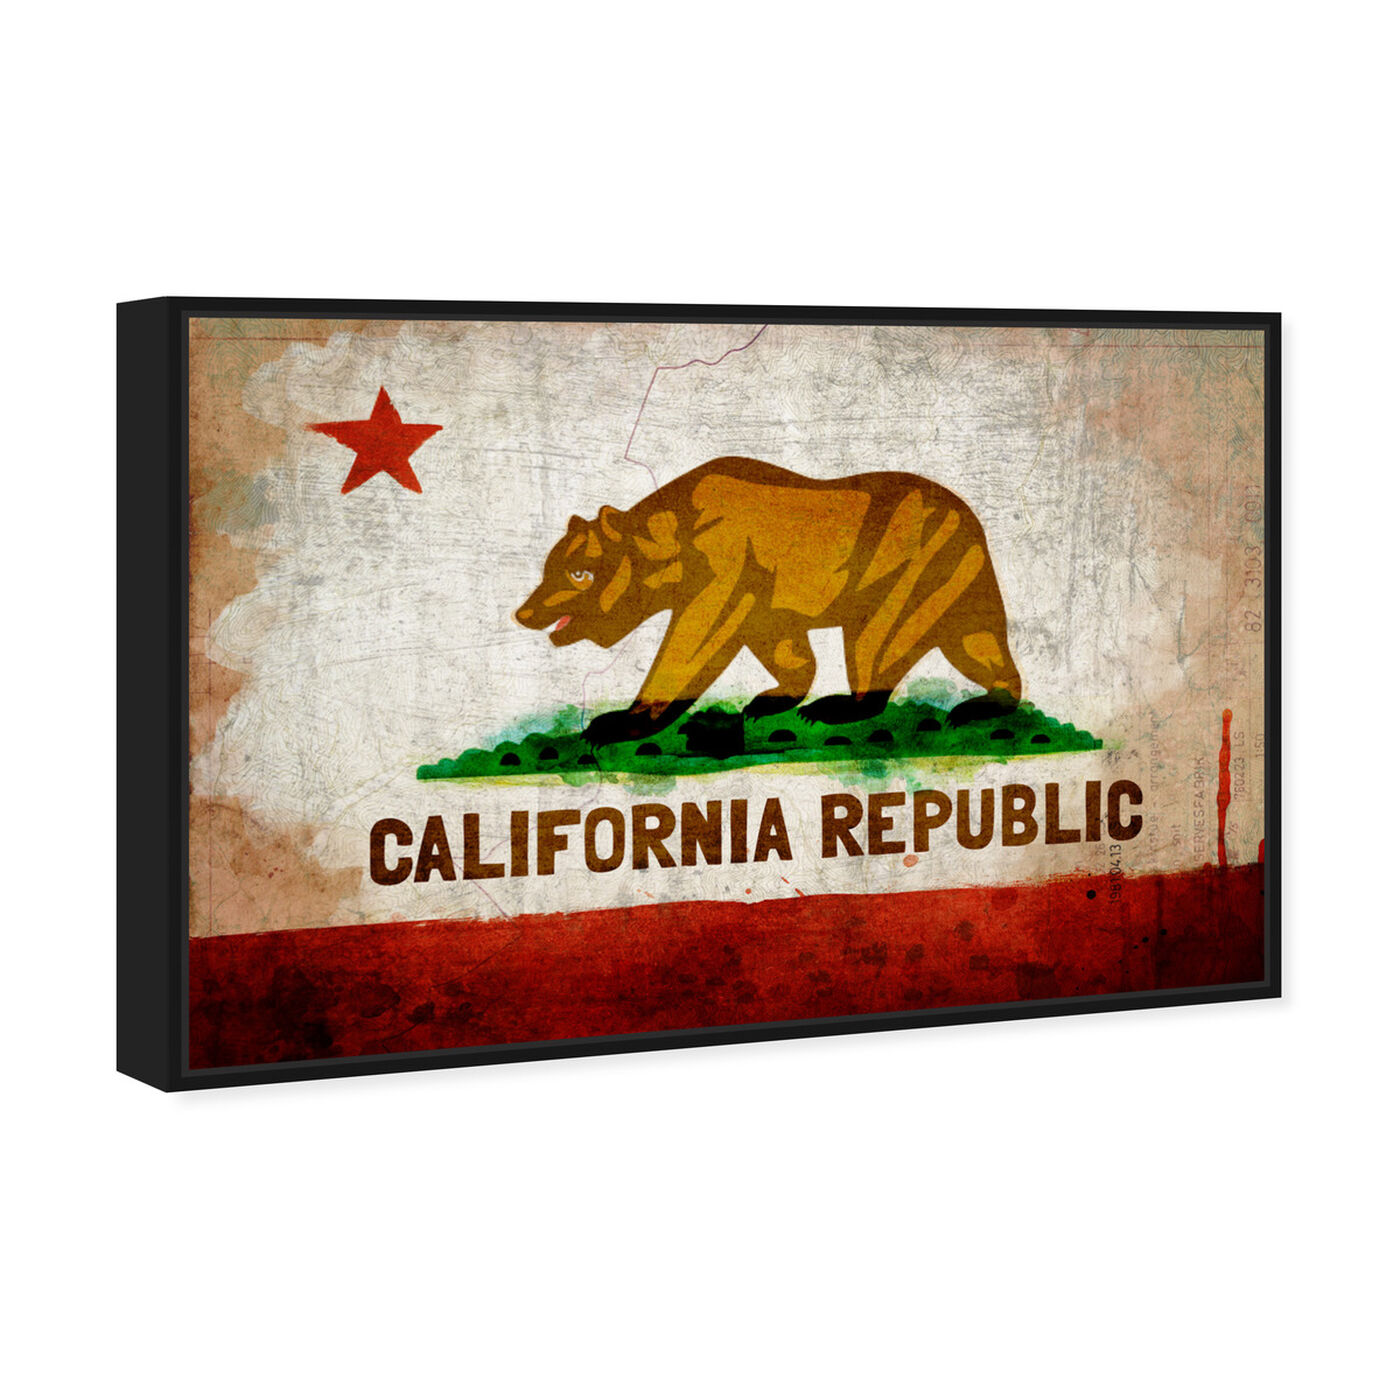 Angled view of California Republic featuring maps and flags and us states flags art.